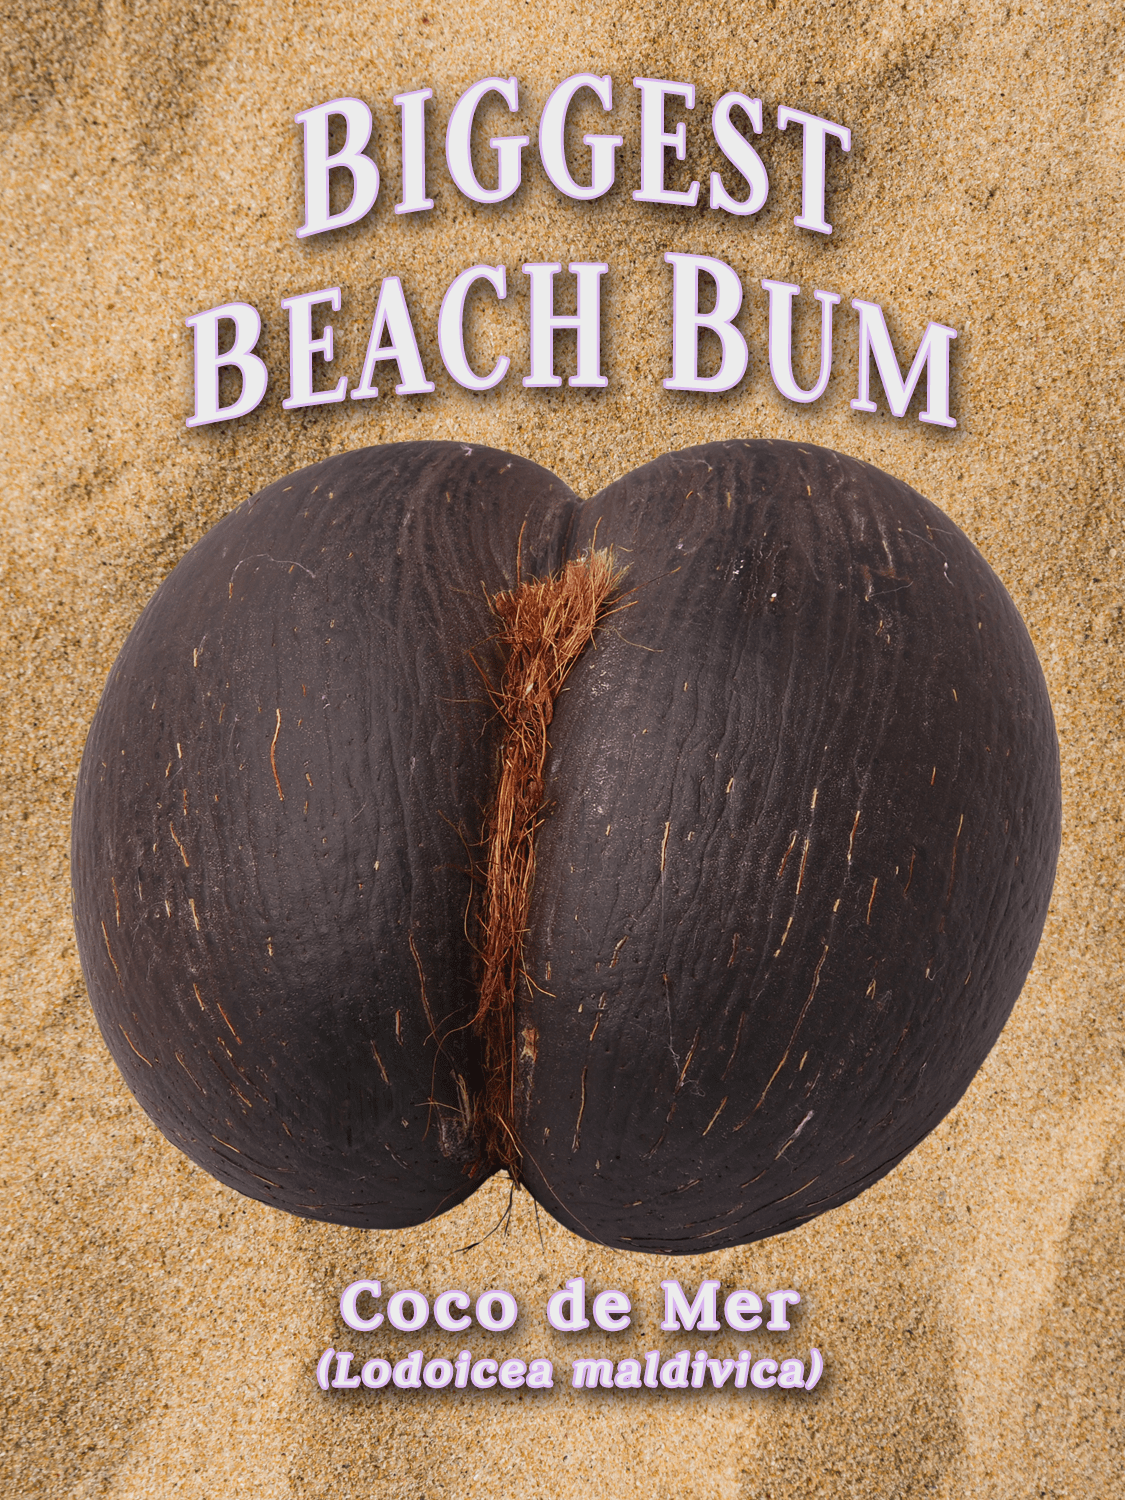 a yearbook style portrait of a coco de mer seed, on the backdrop of sand